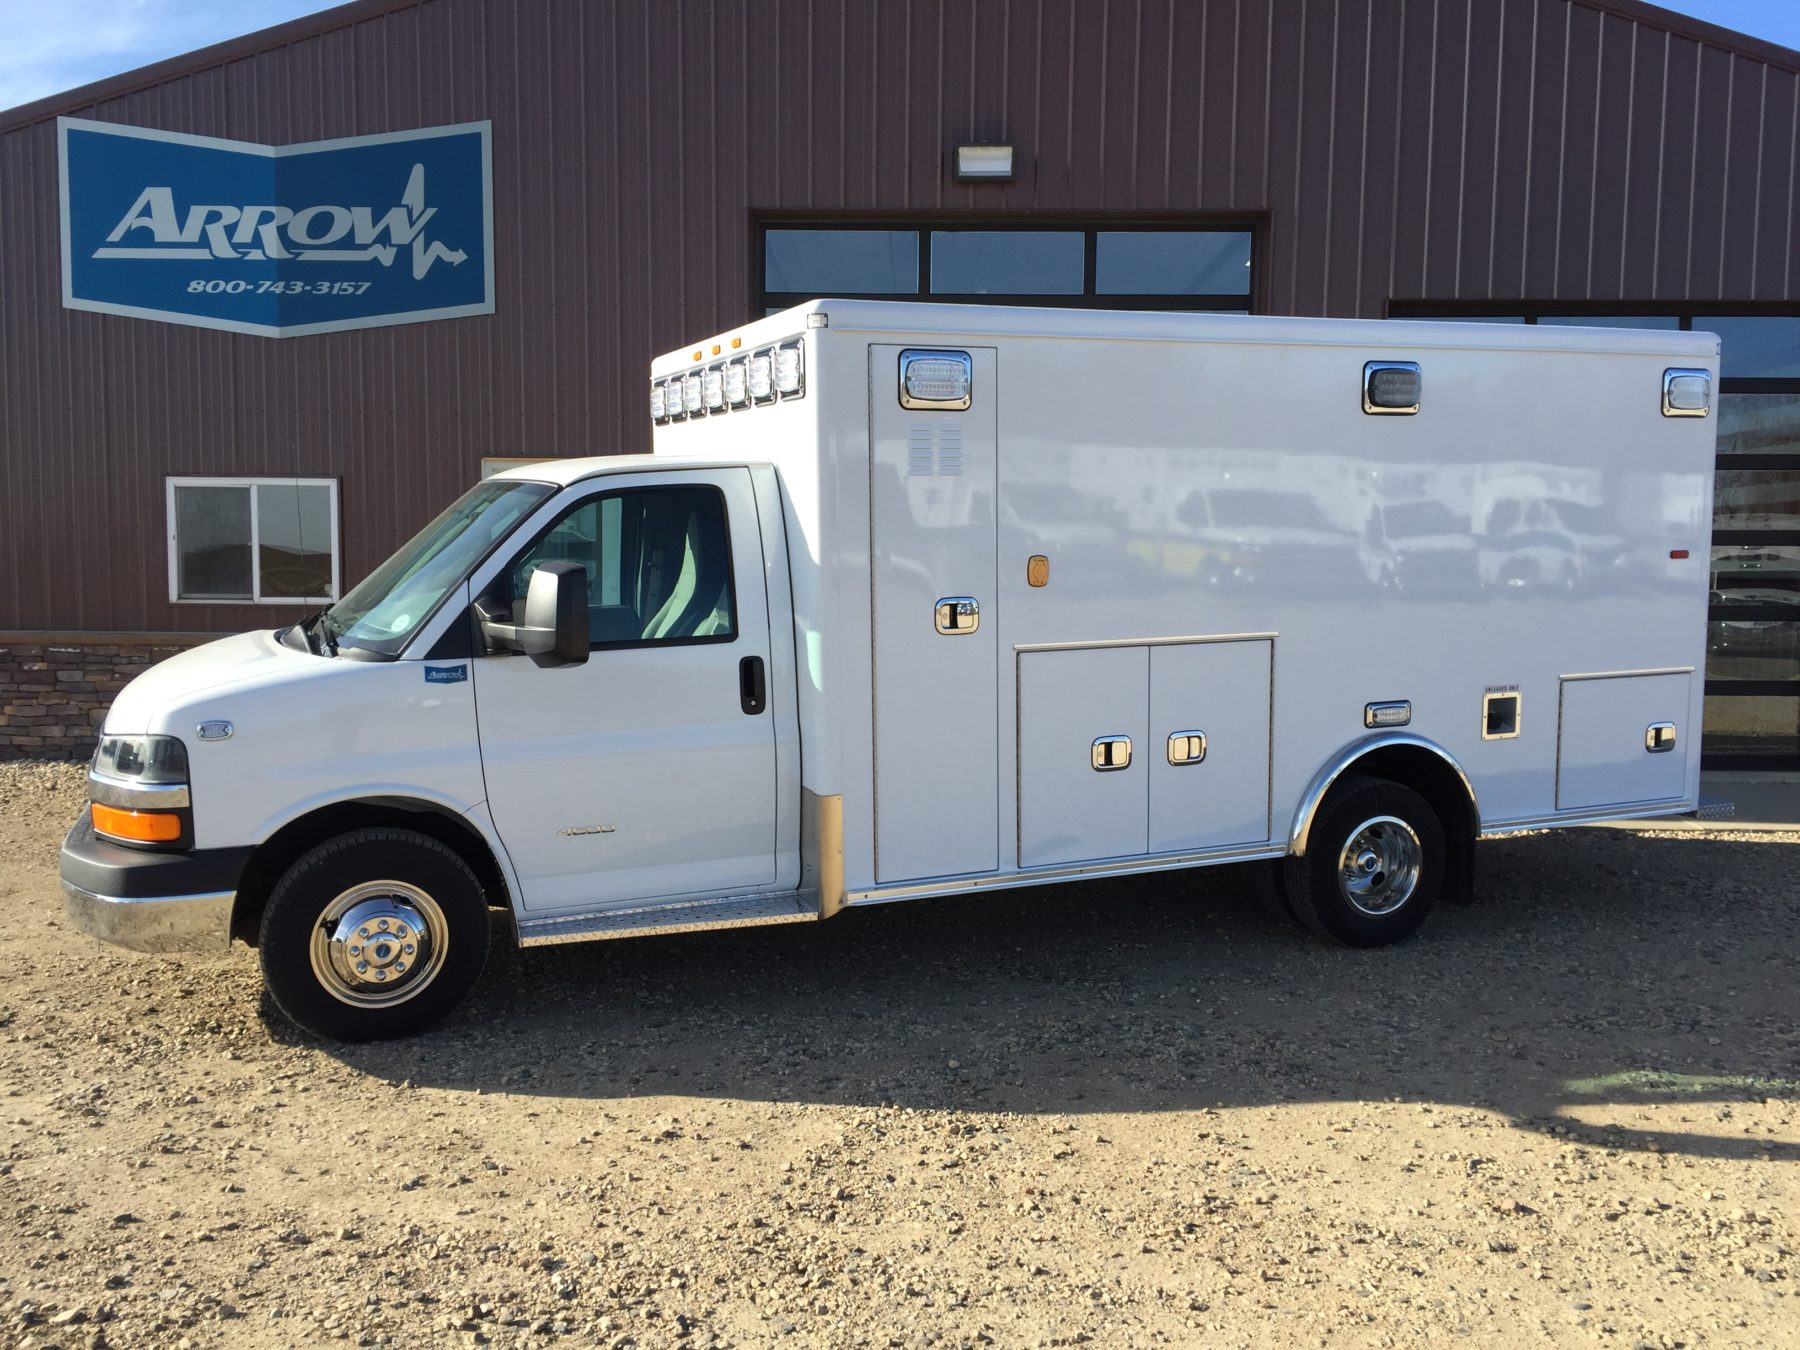 2016 Chevrolet G4500 Type 3 Ambulance For Sale – Picture 1